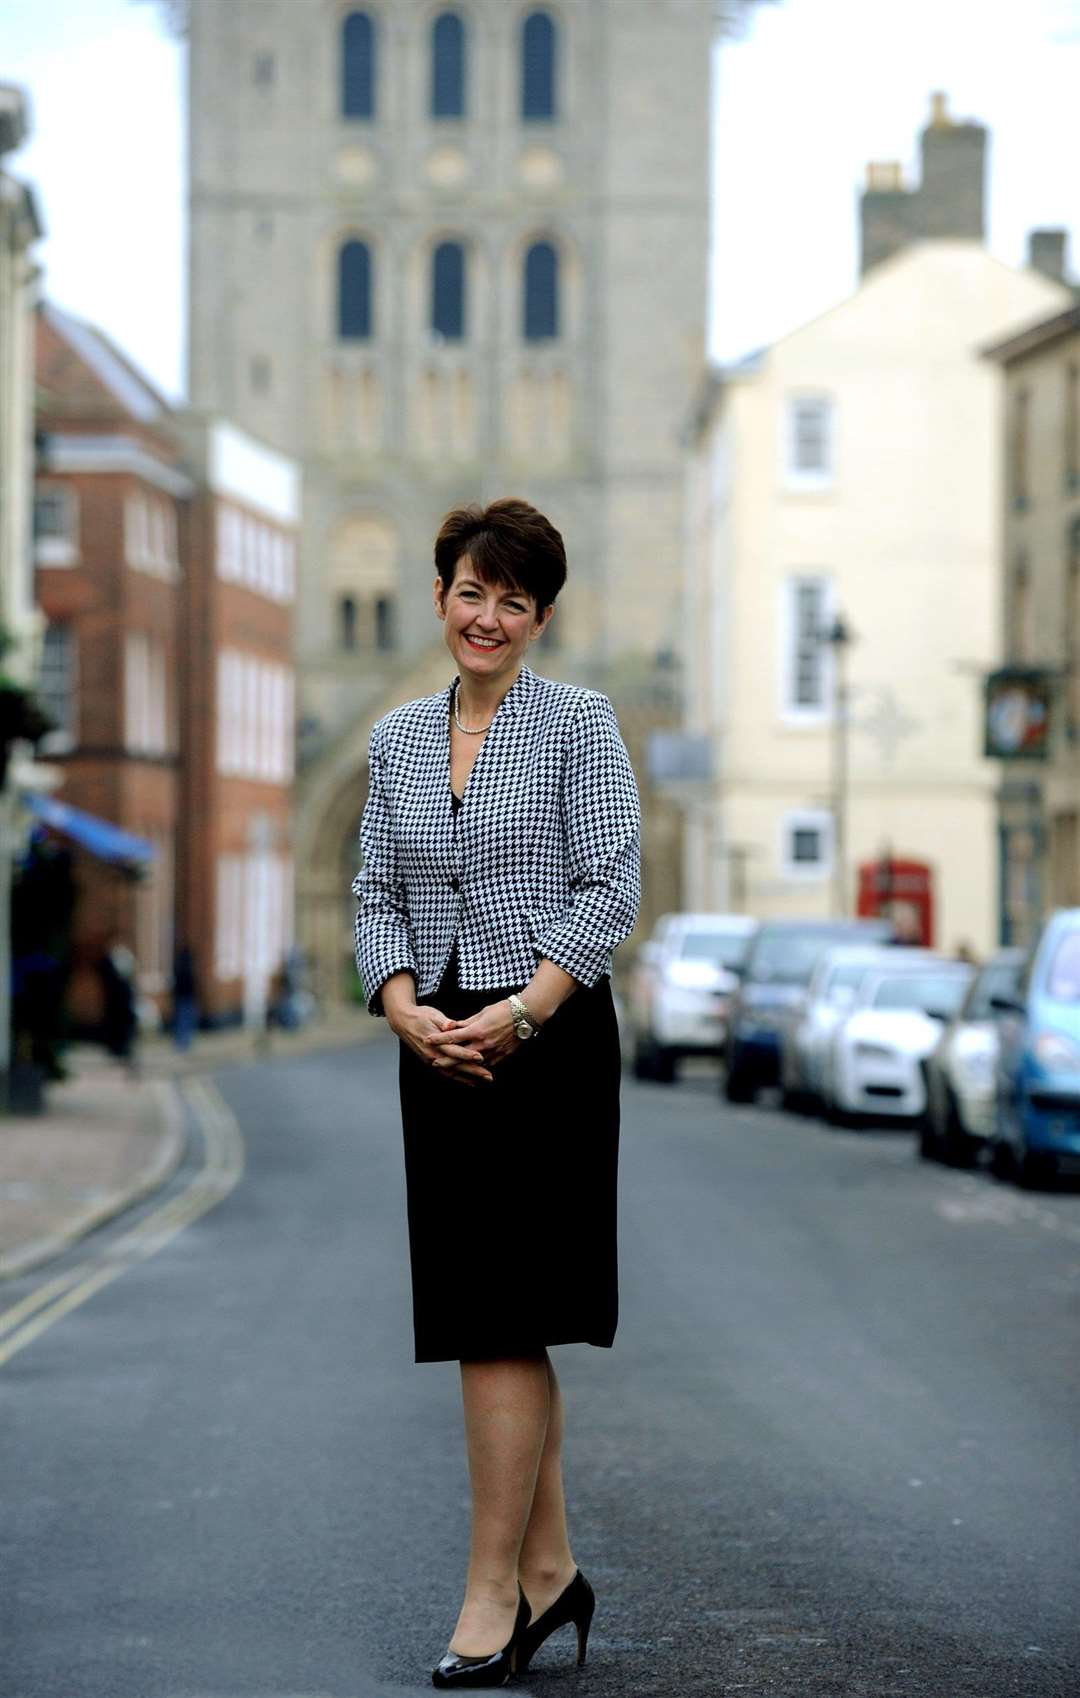 Jo Churchill, Bury St Edmunds MP